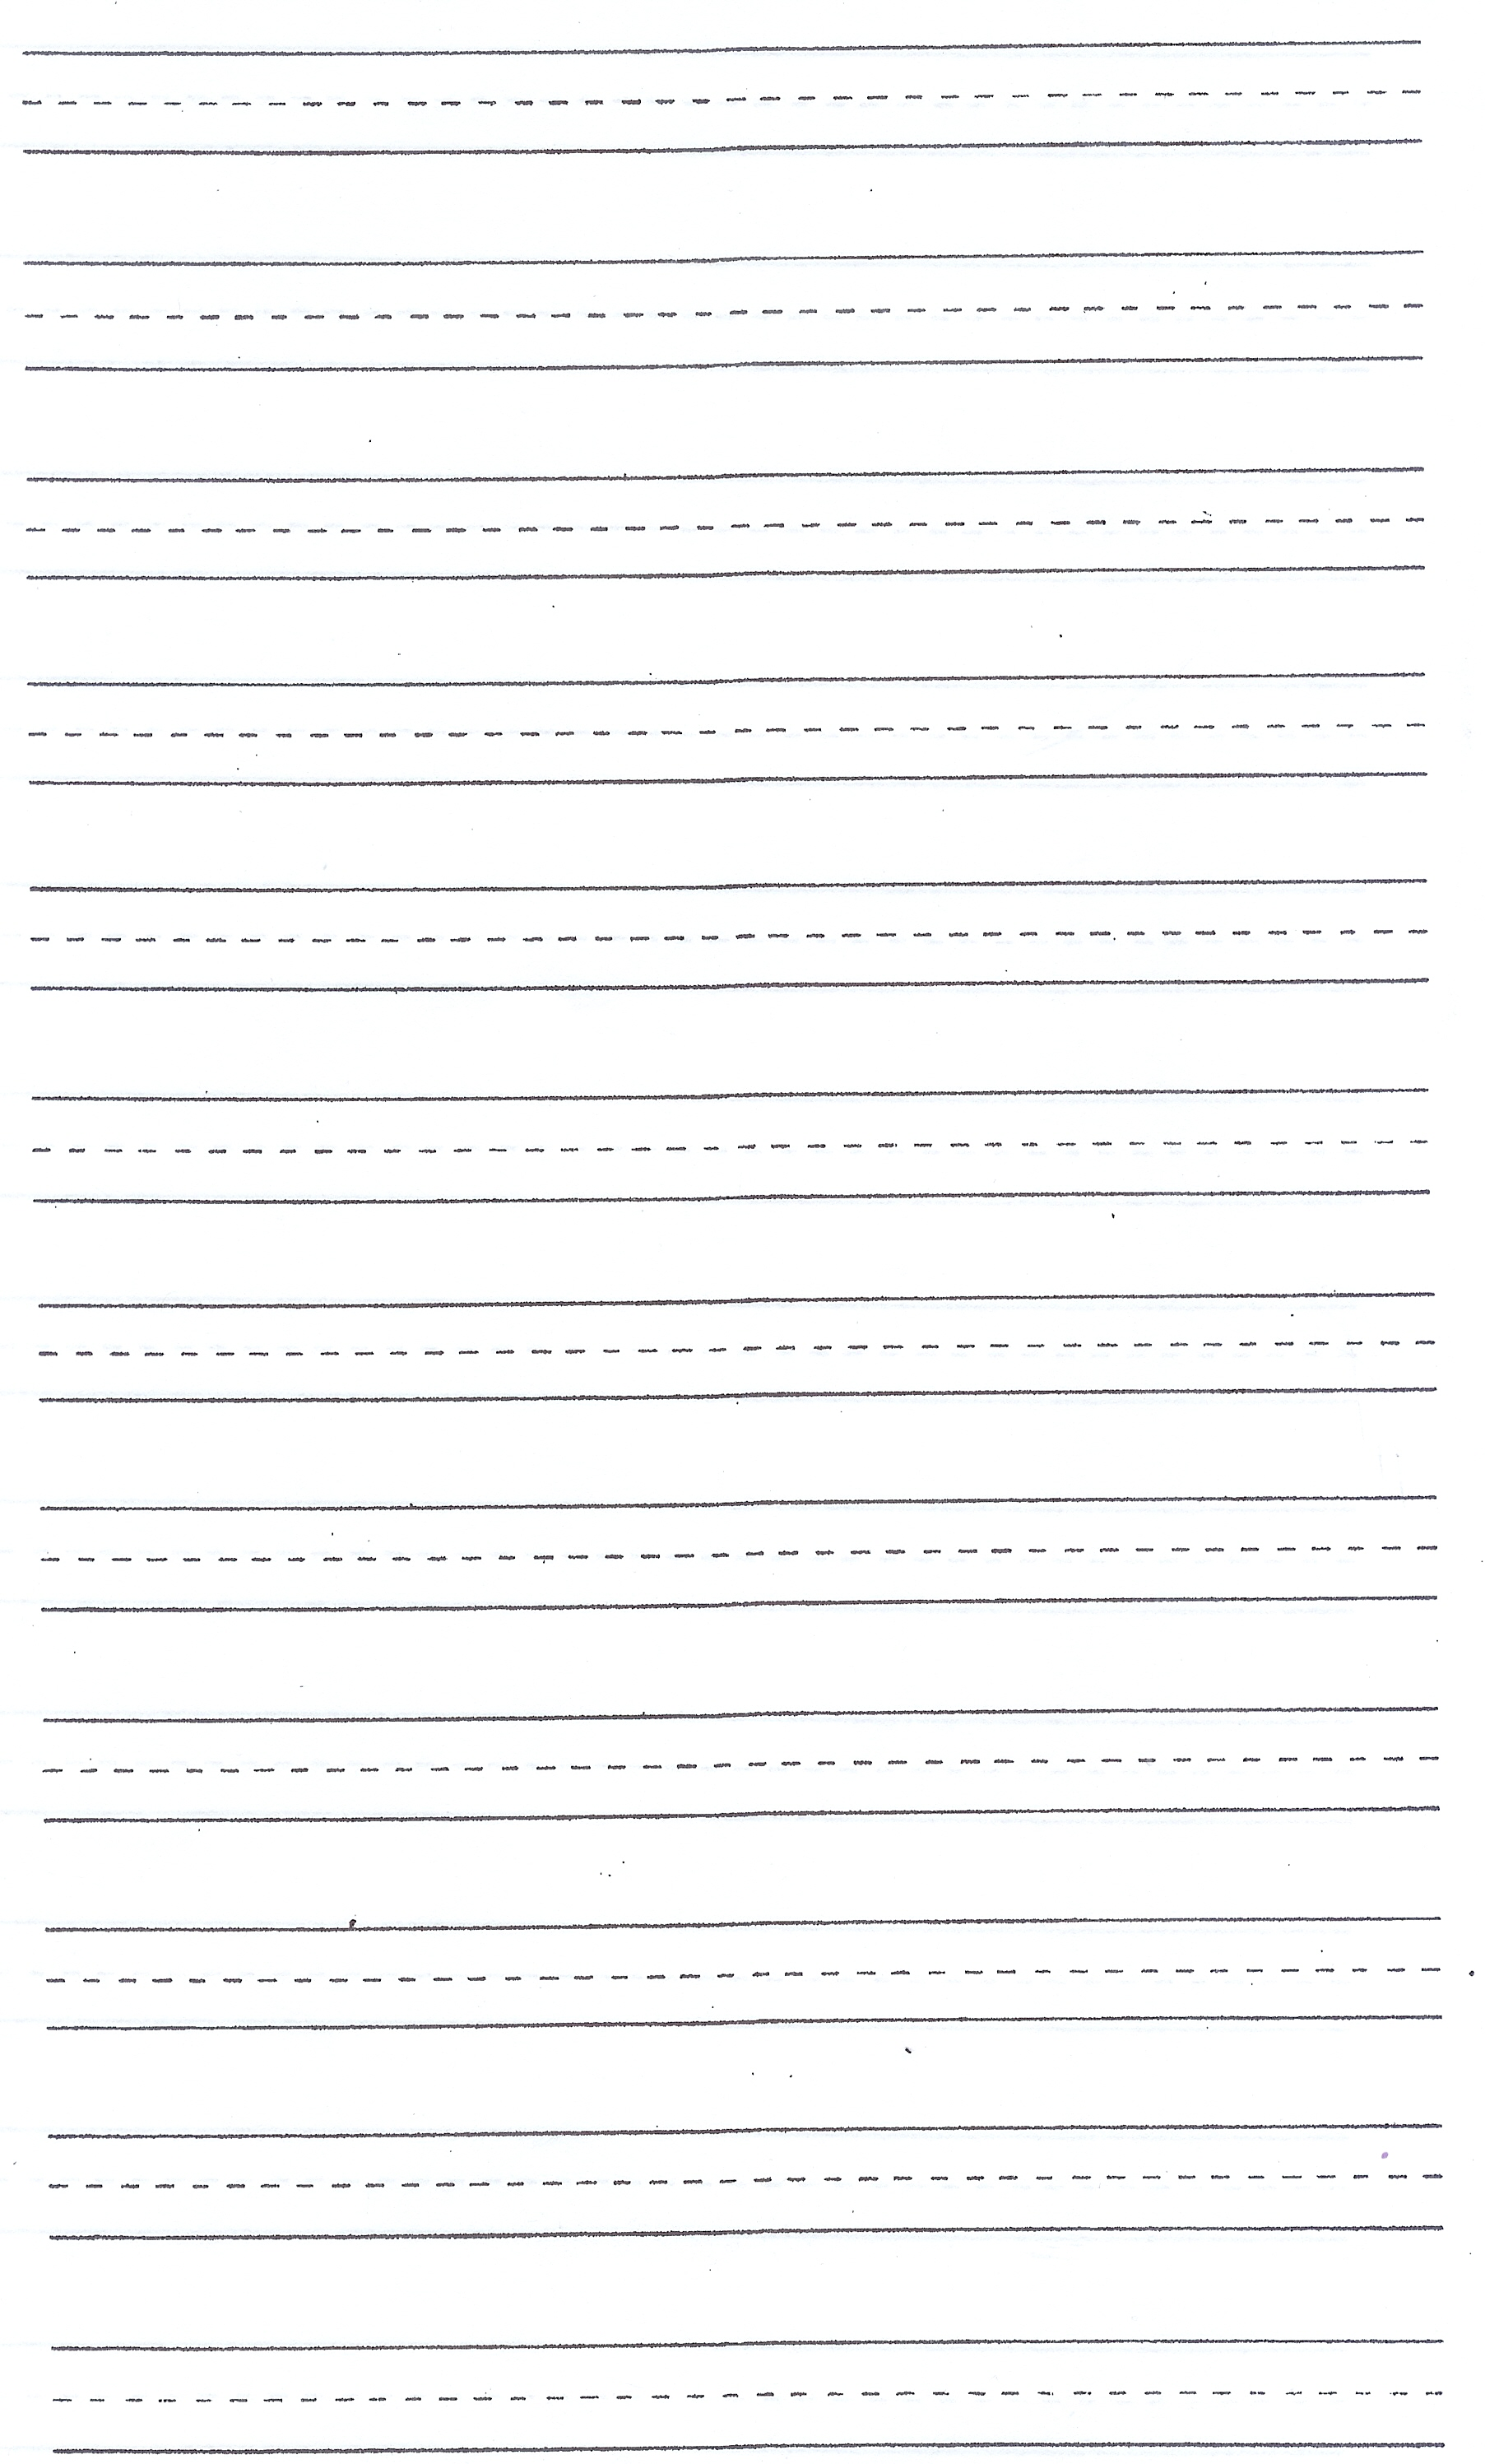 Paper Printable Images Gallery Category Page 15 ...